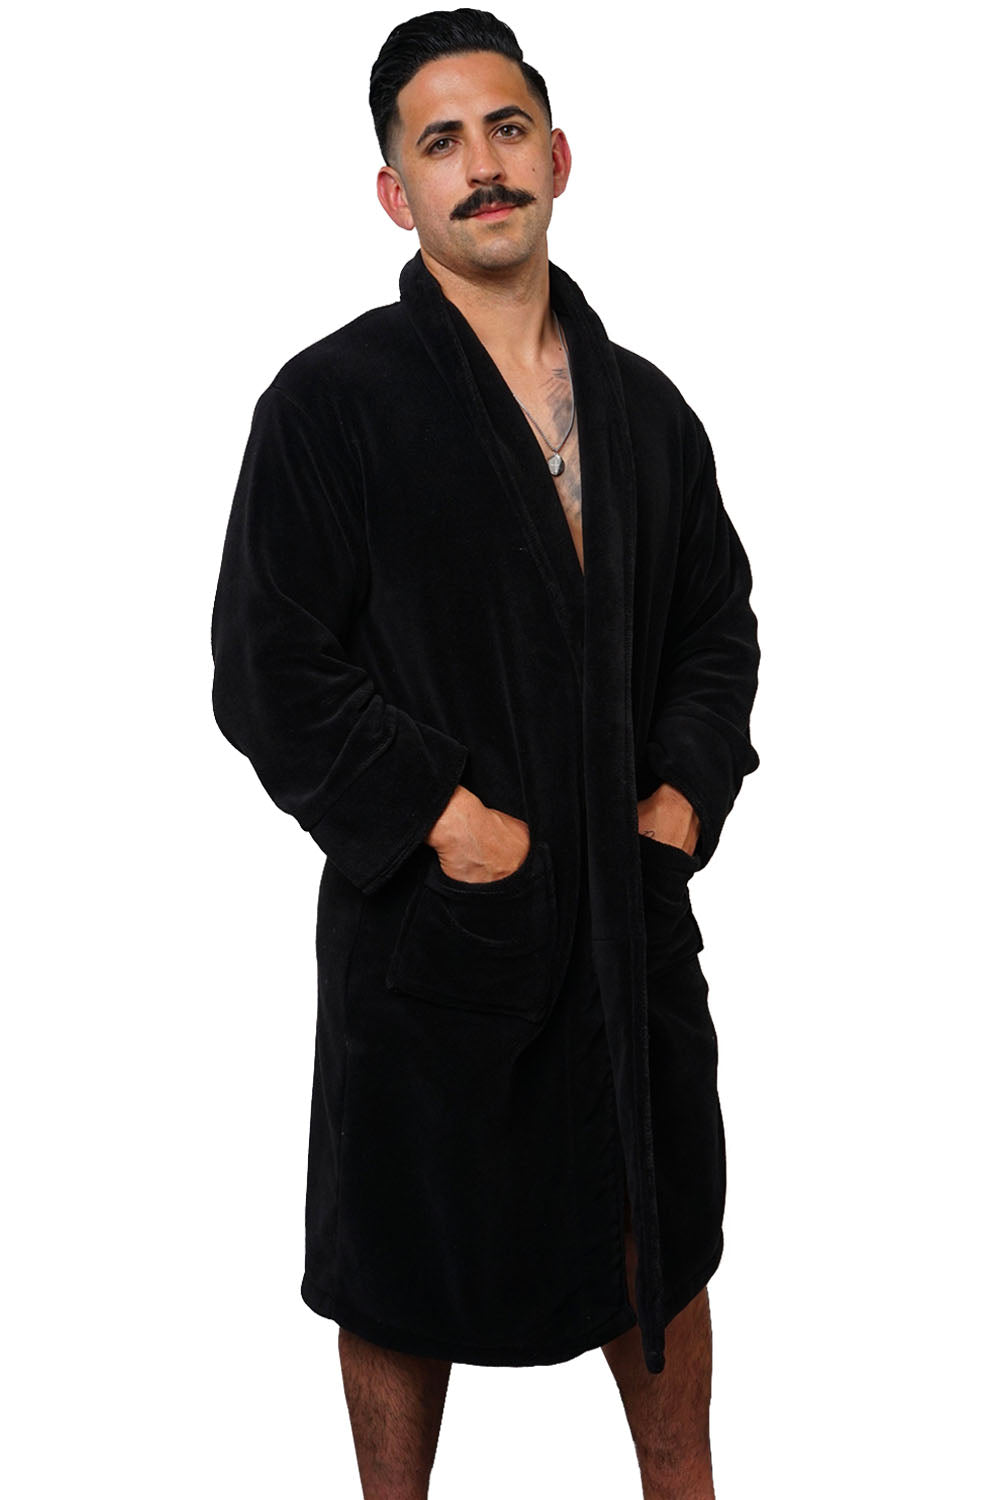 LUXE PLUSH ROBE - Fear Of Being Average